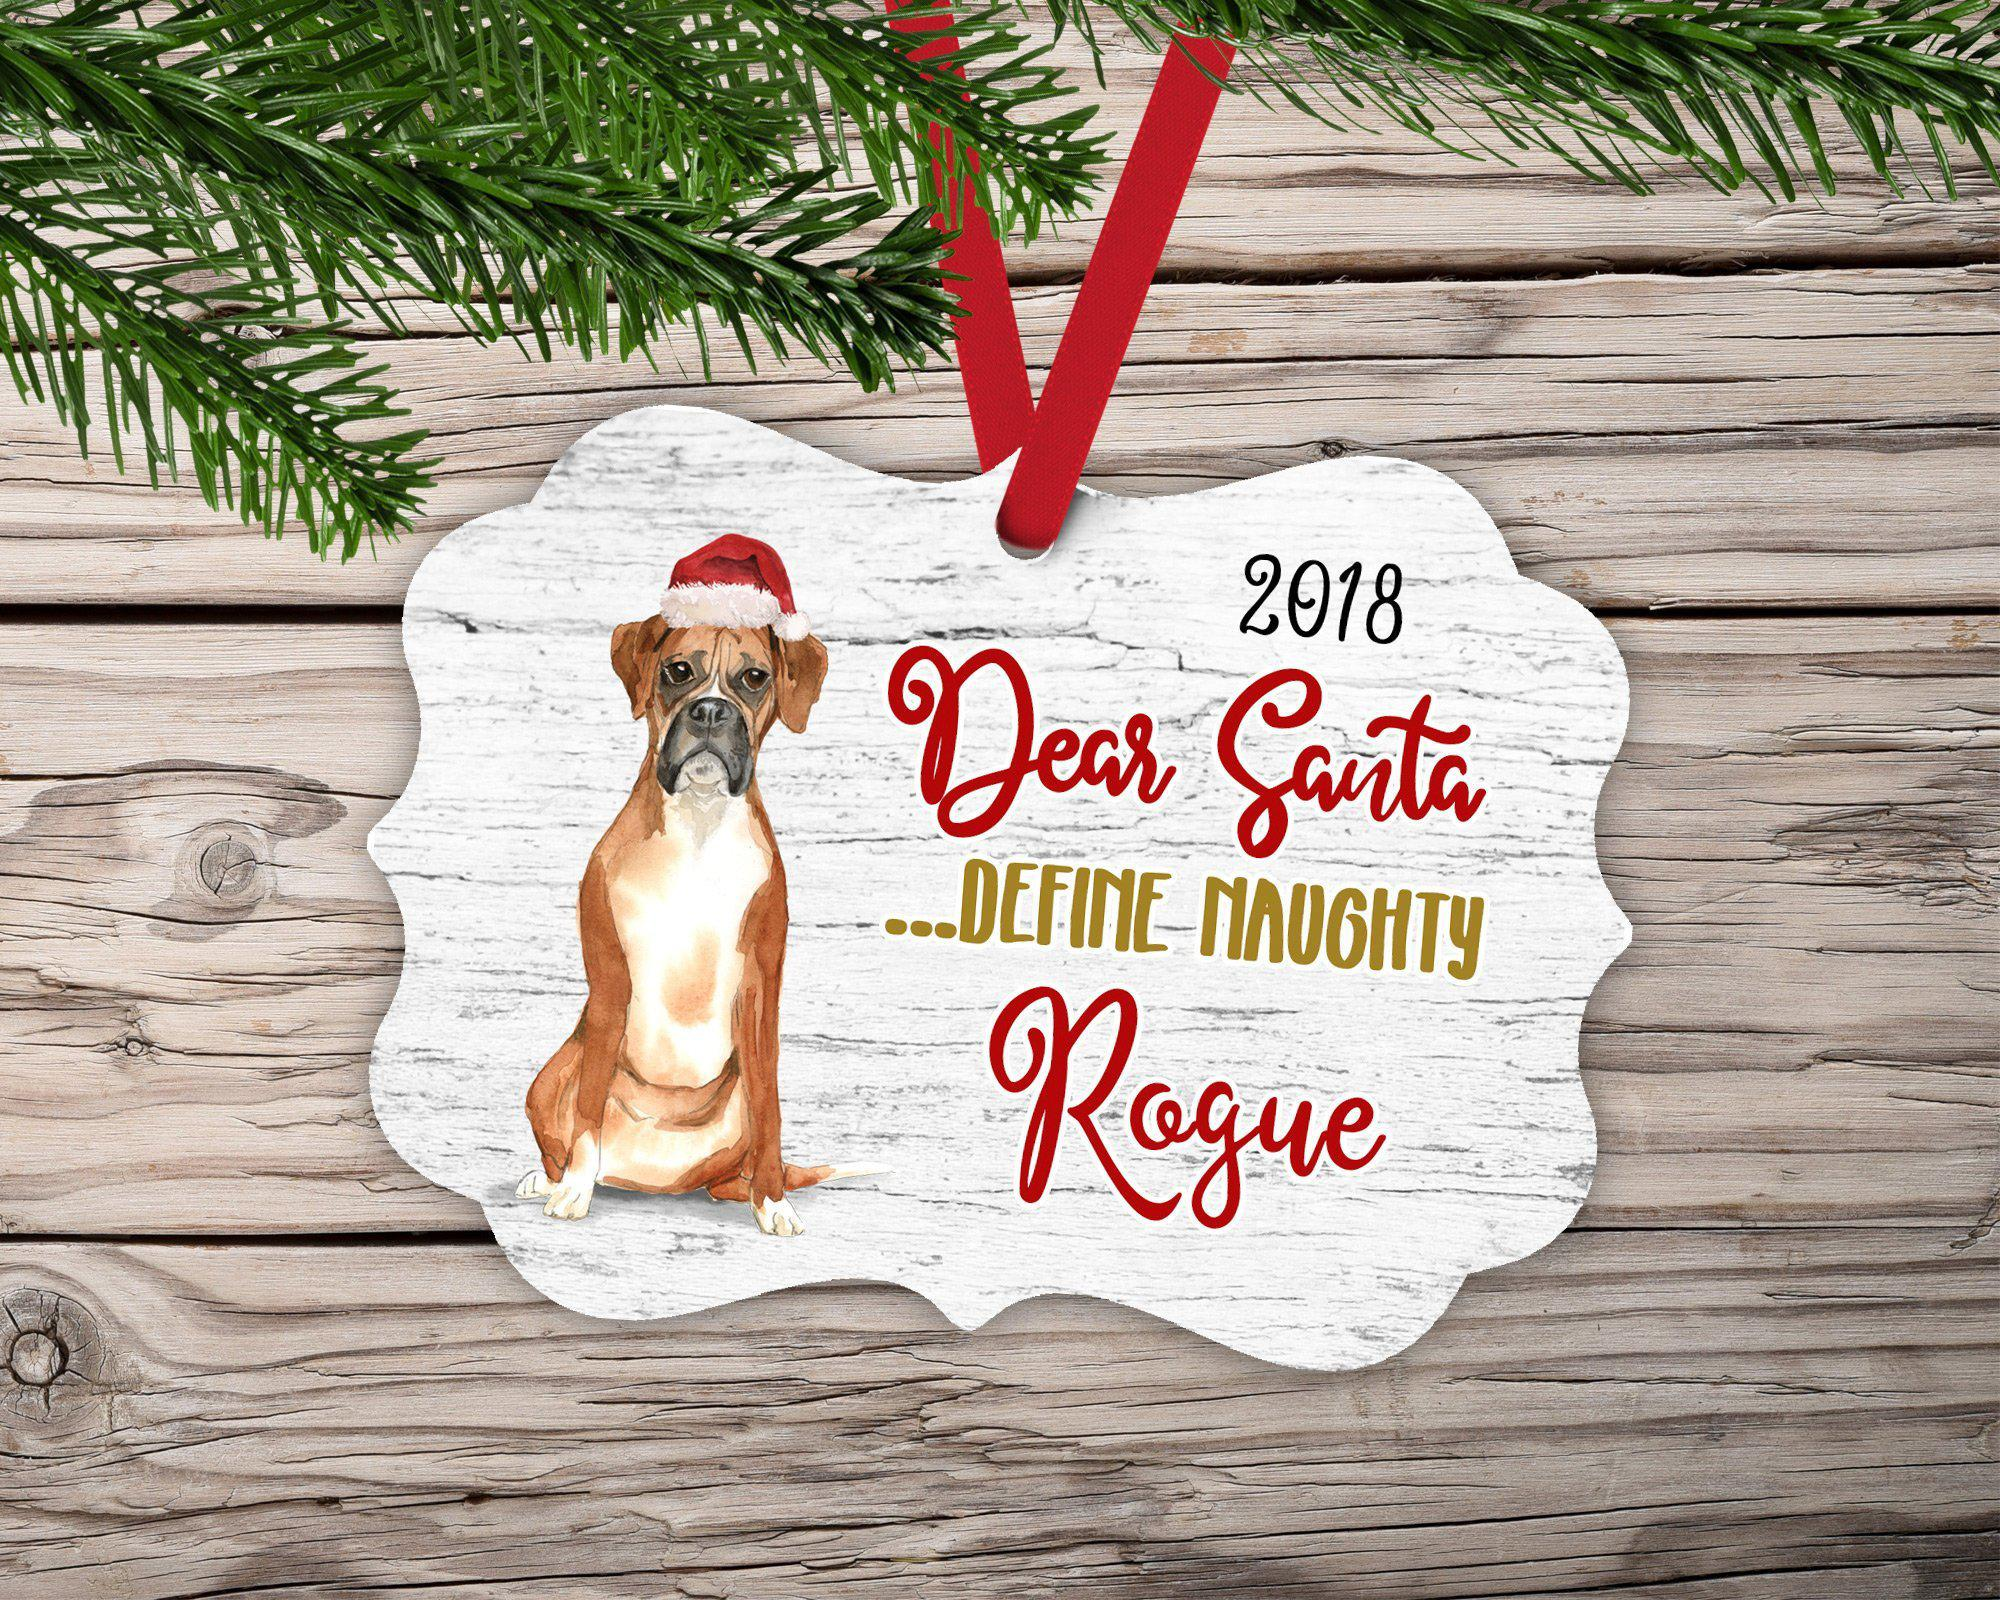 Dear Santa Boxer Dog Ornament-Ornaments-Maddie & Co.